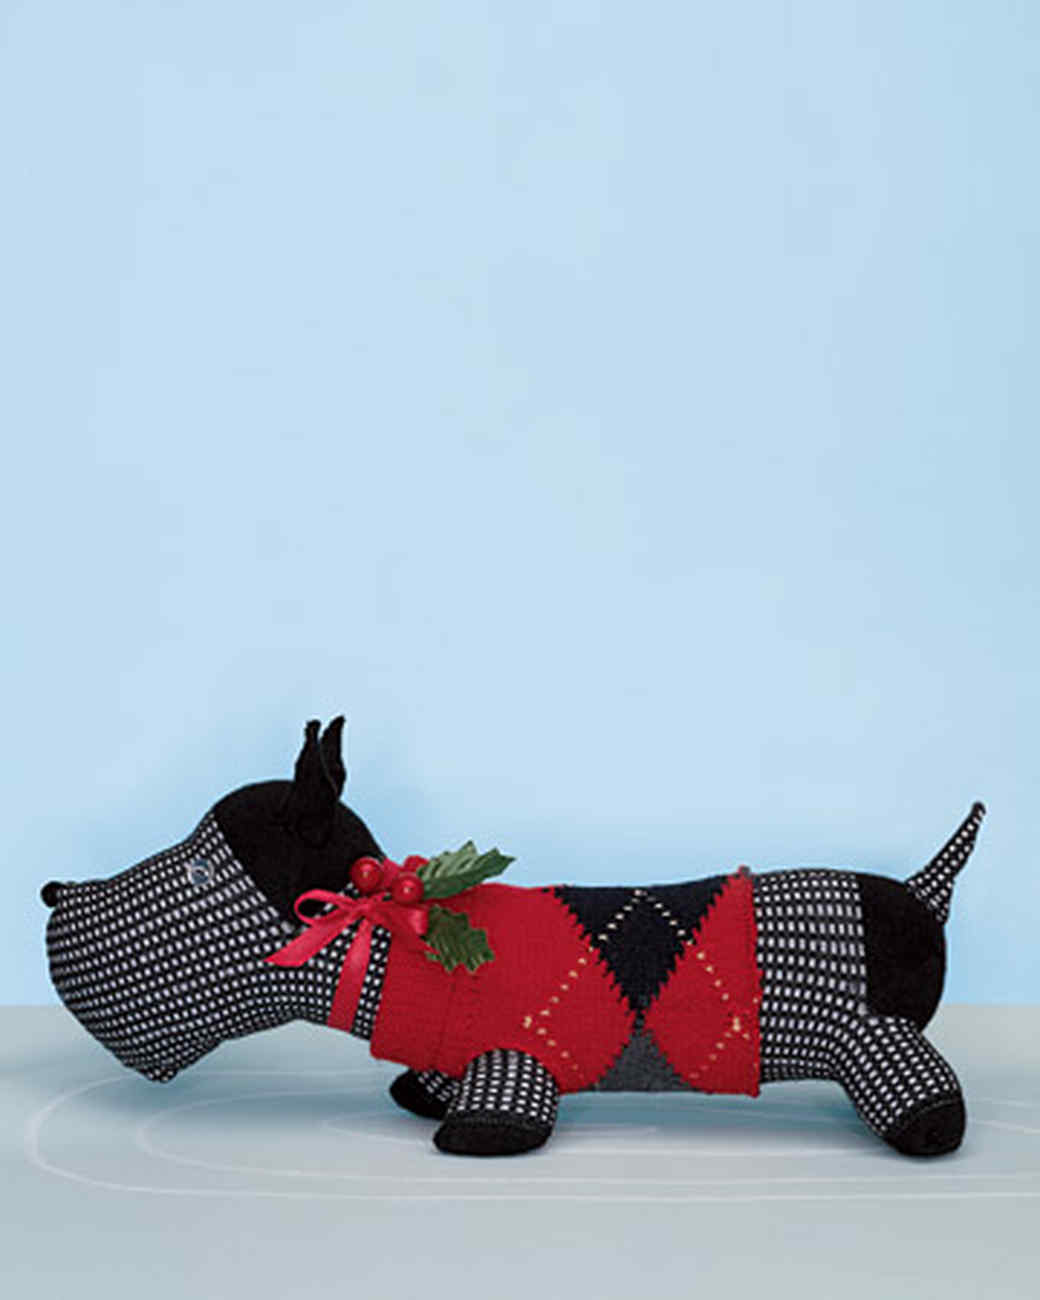 How to Sew a Sock Dog How to Sew a Sock Dog new images